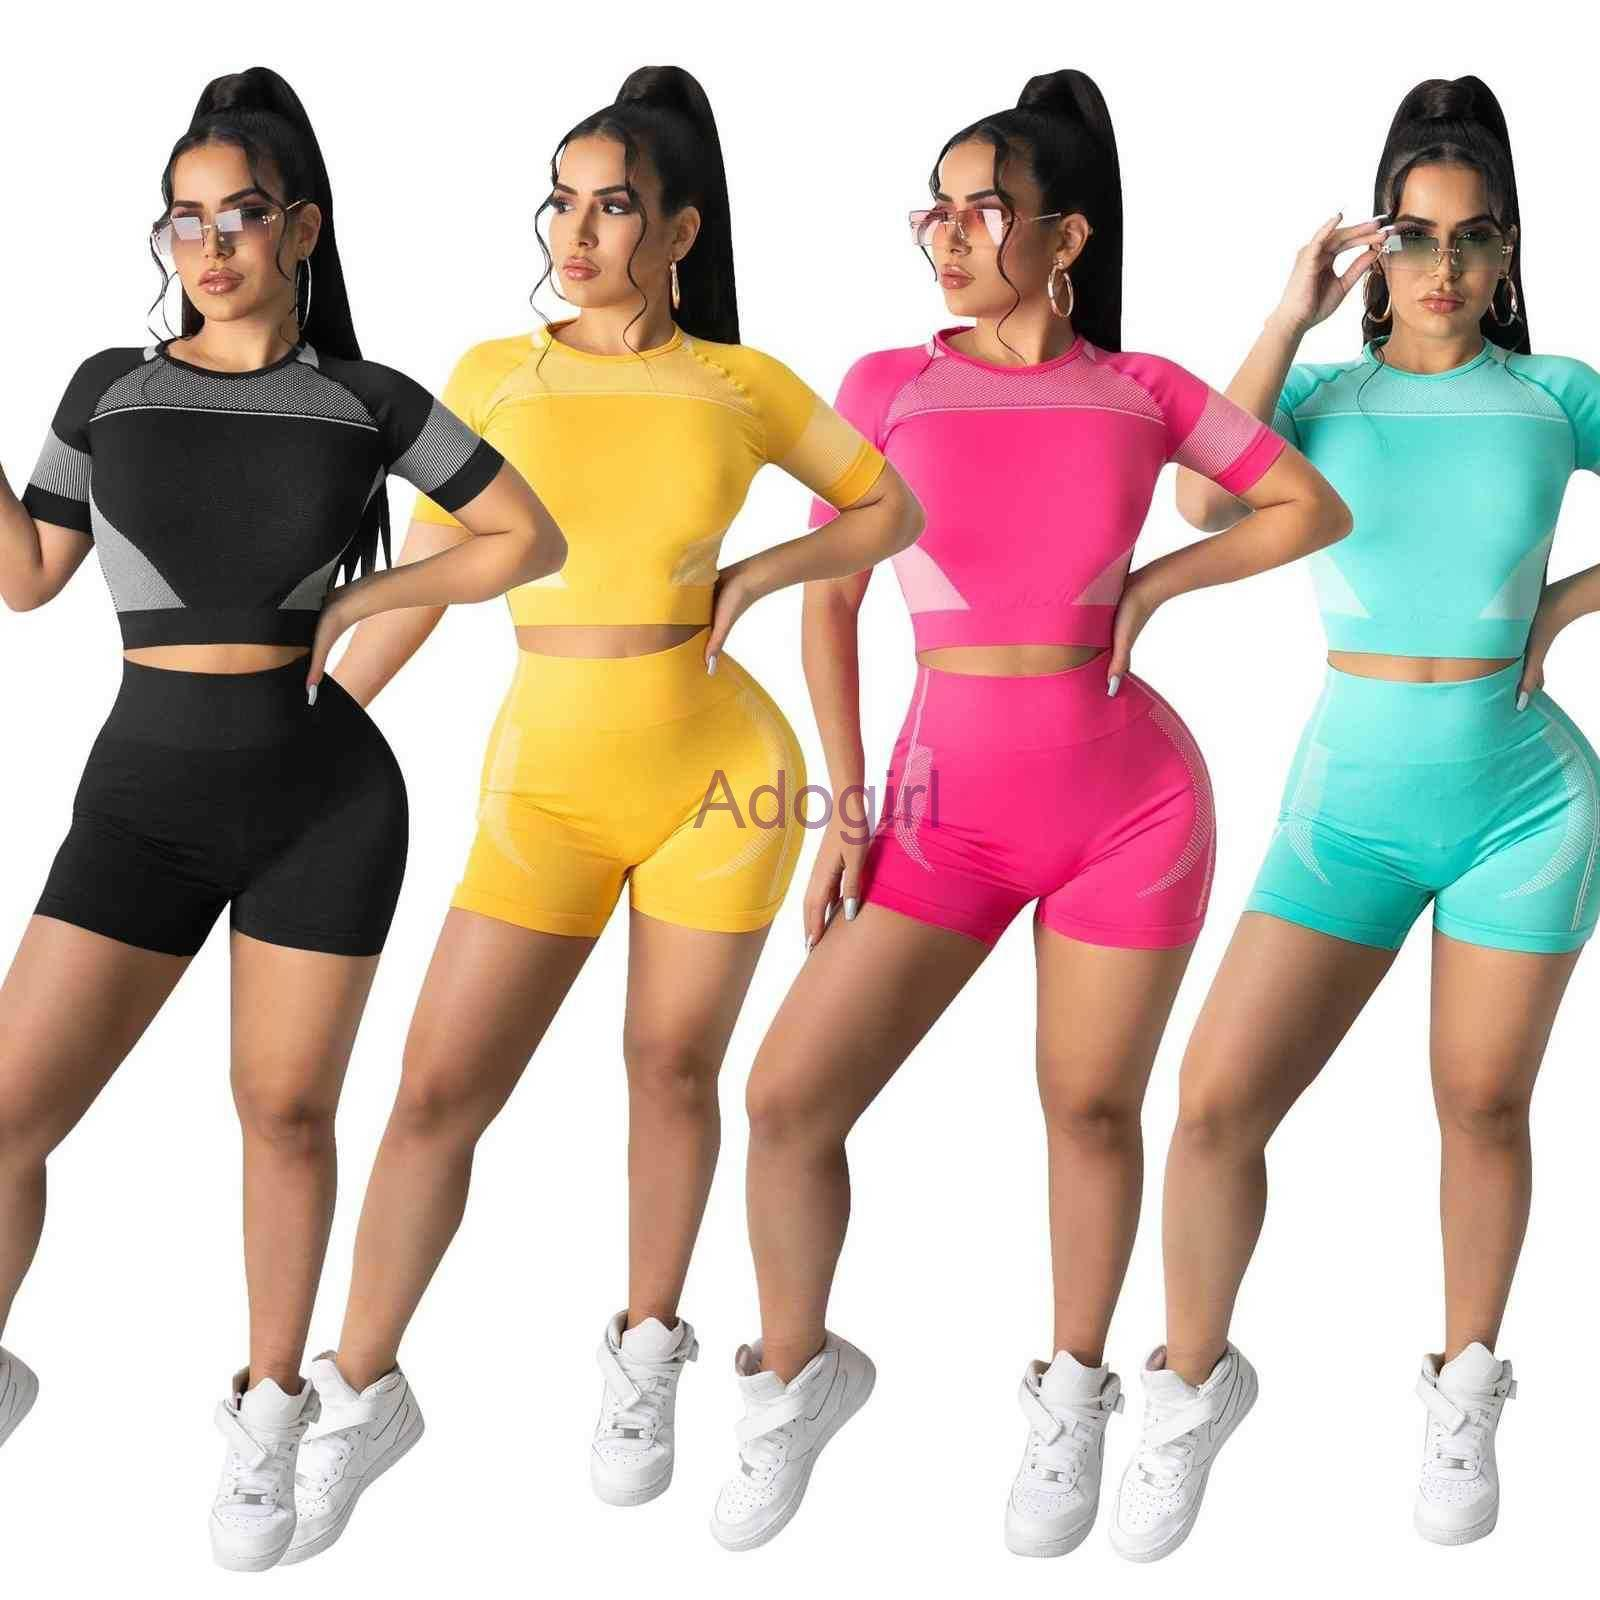 2021 News Summer Women Sportwear Outfits Fashion Casual Printed T Shirt Shorts 2 Piece Set Tracksuits Sportswear Ladies Jogging Suit S-XL